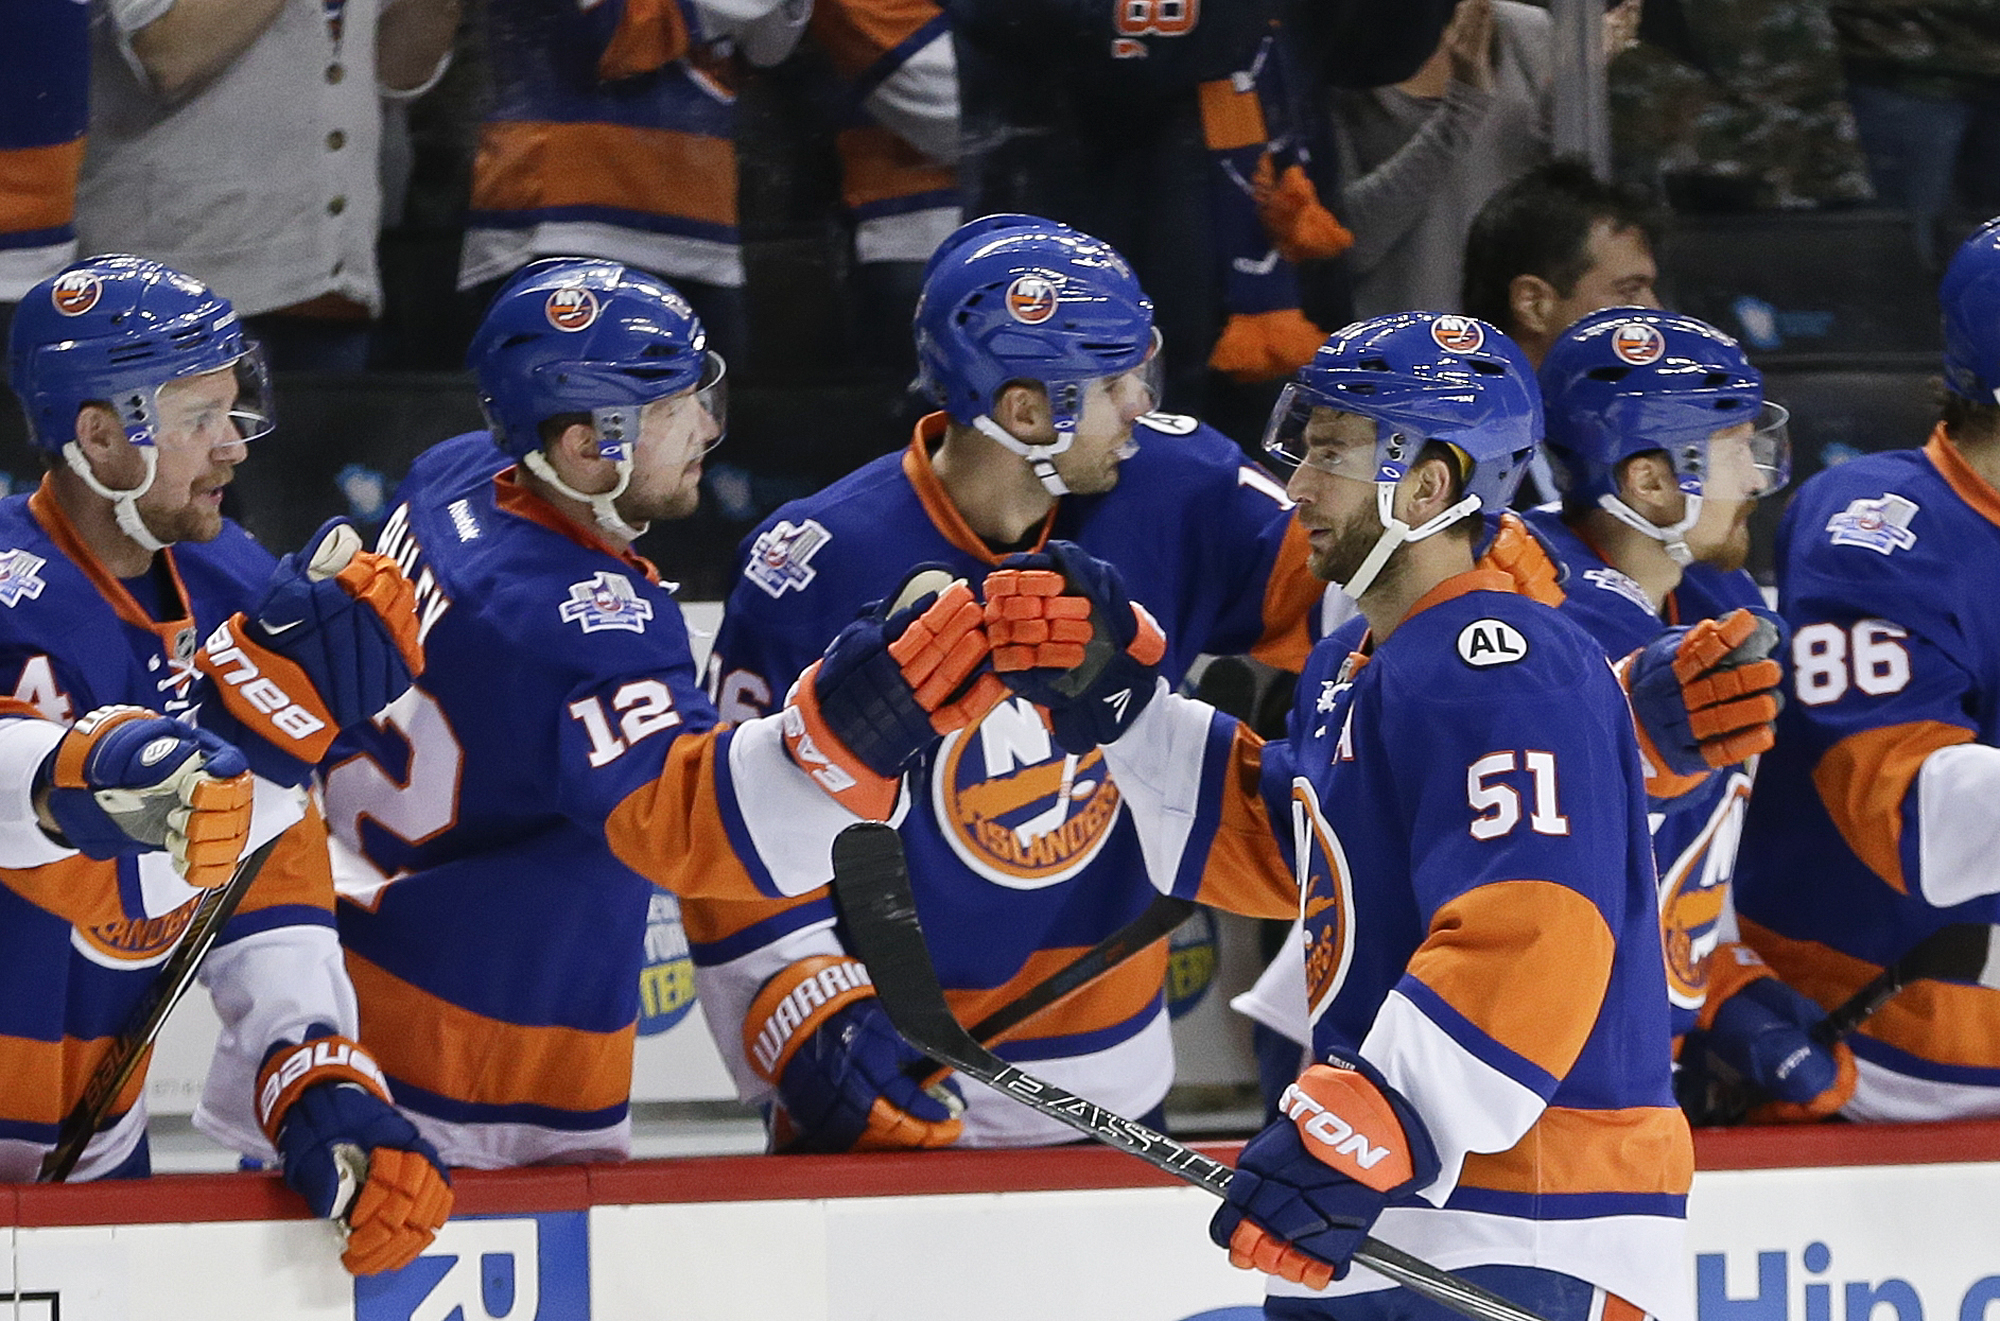 New York Islanders' Frans Nielsen (51) celebrates with teammates after scoring a goal during the first period of an NHL hockey game against the Arizona Coyotes Monday, Nov. 16, 2015, in New York. (AP Photo/Frank Franklin II)